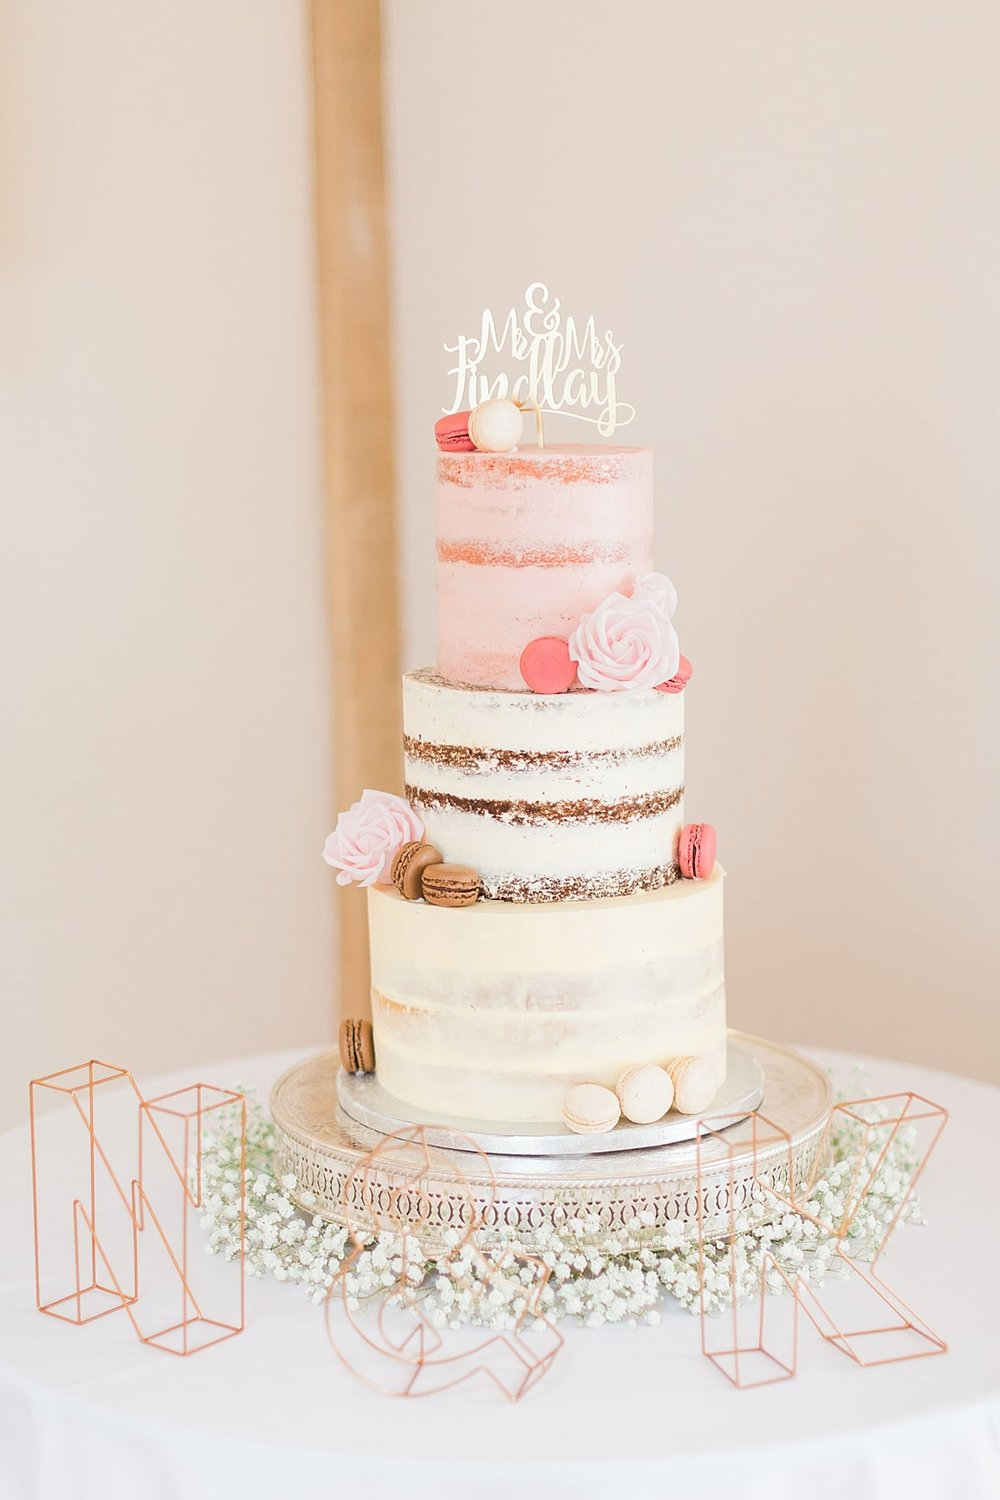 Beautiful semi naked wedding cake design, dressed with macarons and sugar roses. By Meadowsweet Cakes. Photography by Sung Blue Photo. Bassmead Manor Barns